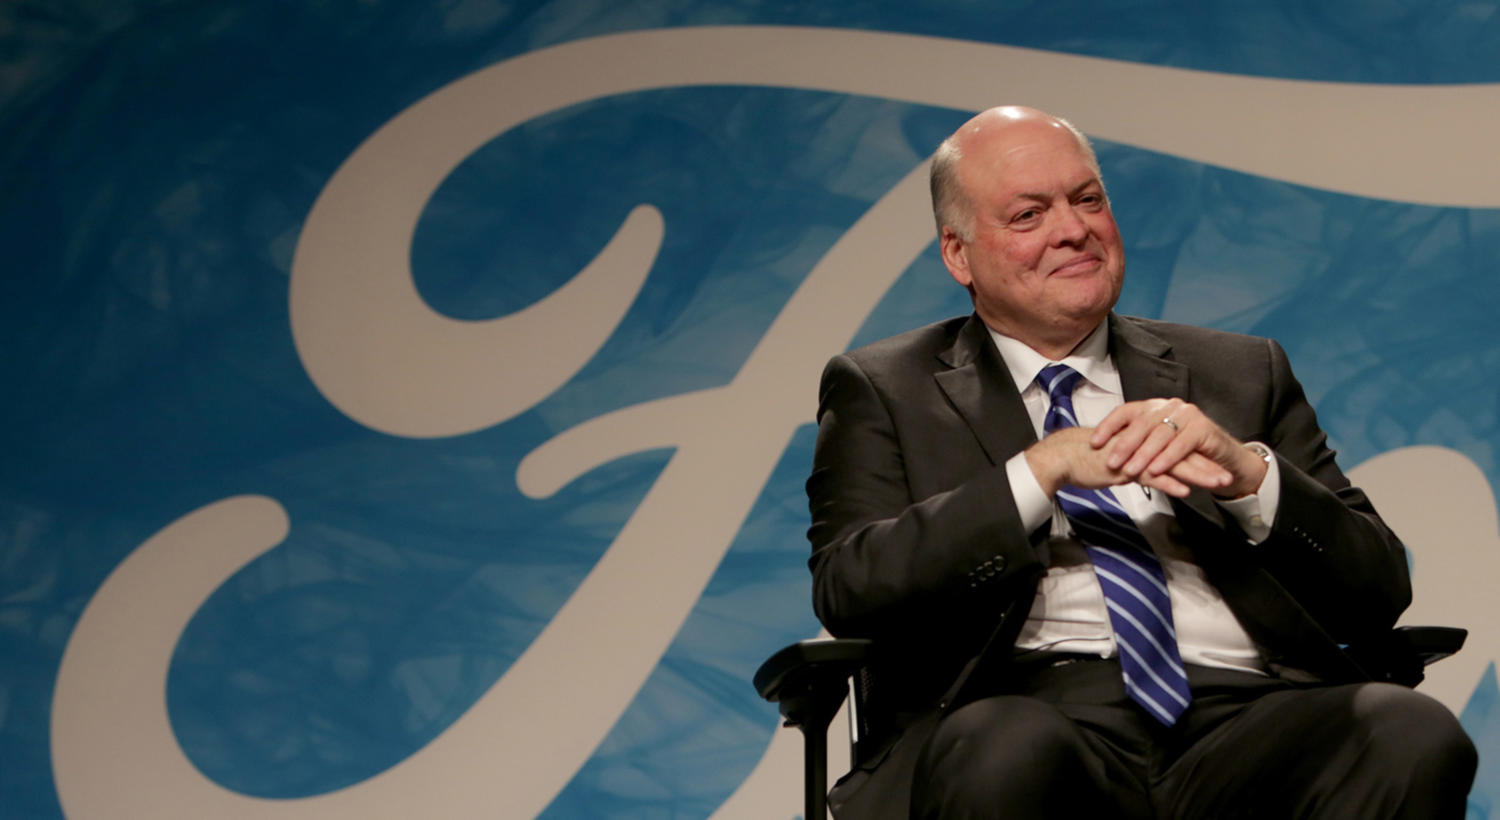 Ford Motor Company President and CEO, Jim Hackett, on Monday, May 22, 2017 at the Ford Motor Company World Headquarters in Dearborn, Mich. Ford said Wednesday it earned a profit of $2 billion during the second quarter. (Elaine Cromie/Detroit Free Press/TNS)